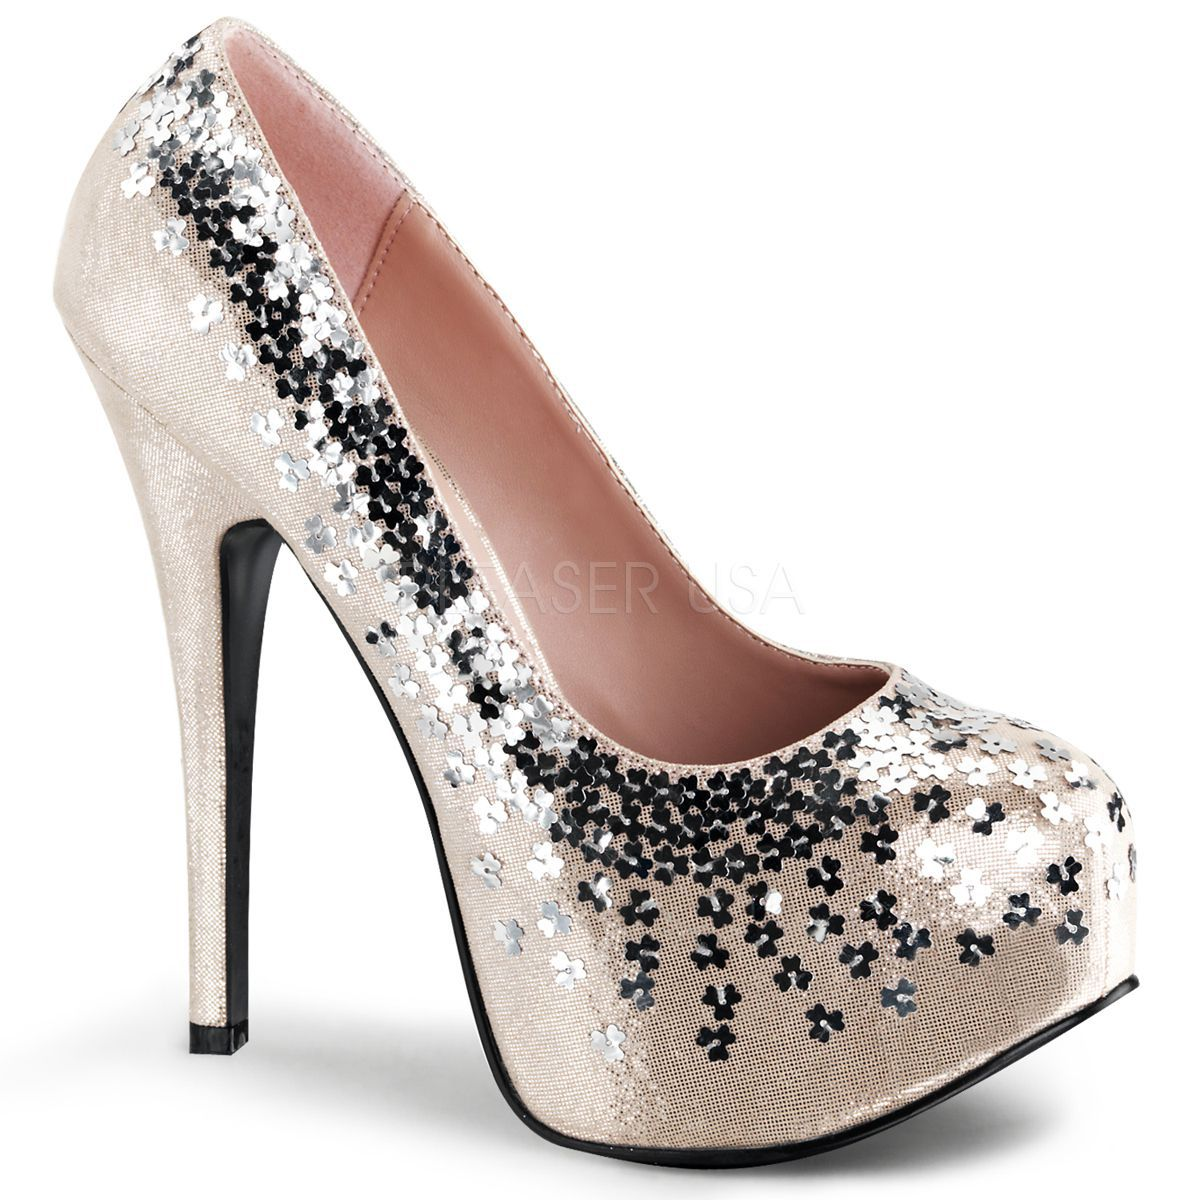 Originales zapatos Bordello de Pleaser decorados con lentejuelas flor